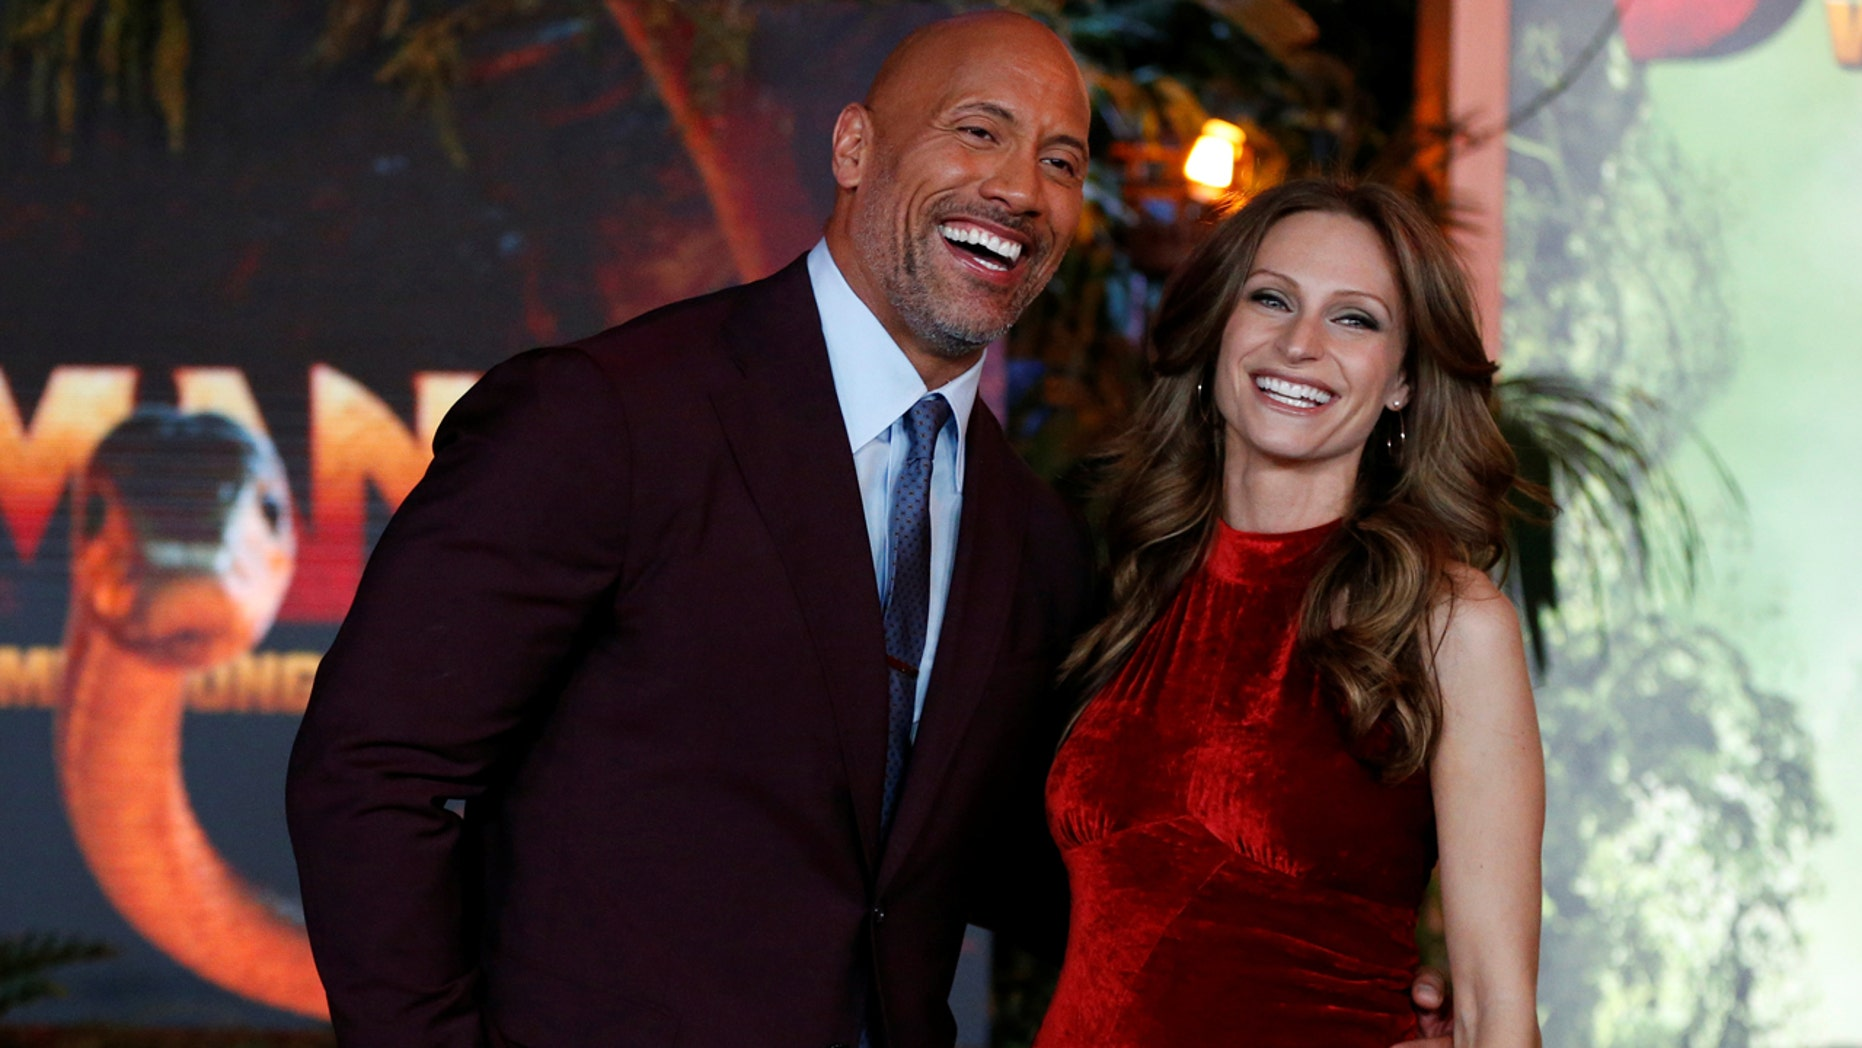 """Cast member Dwayne Johnson and Lauren Hashian pose at the premiere for """"Jumanji: Welcome to the Jungle"""" in Los Angeles, California, U.S., December 11, 2017. REUTERS/Mario Anzuoni - RC1DCC32B840"""